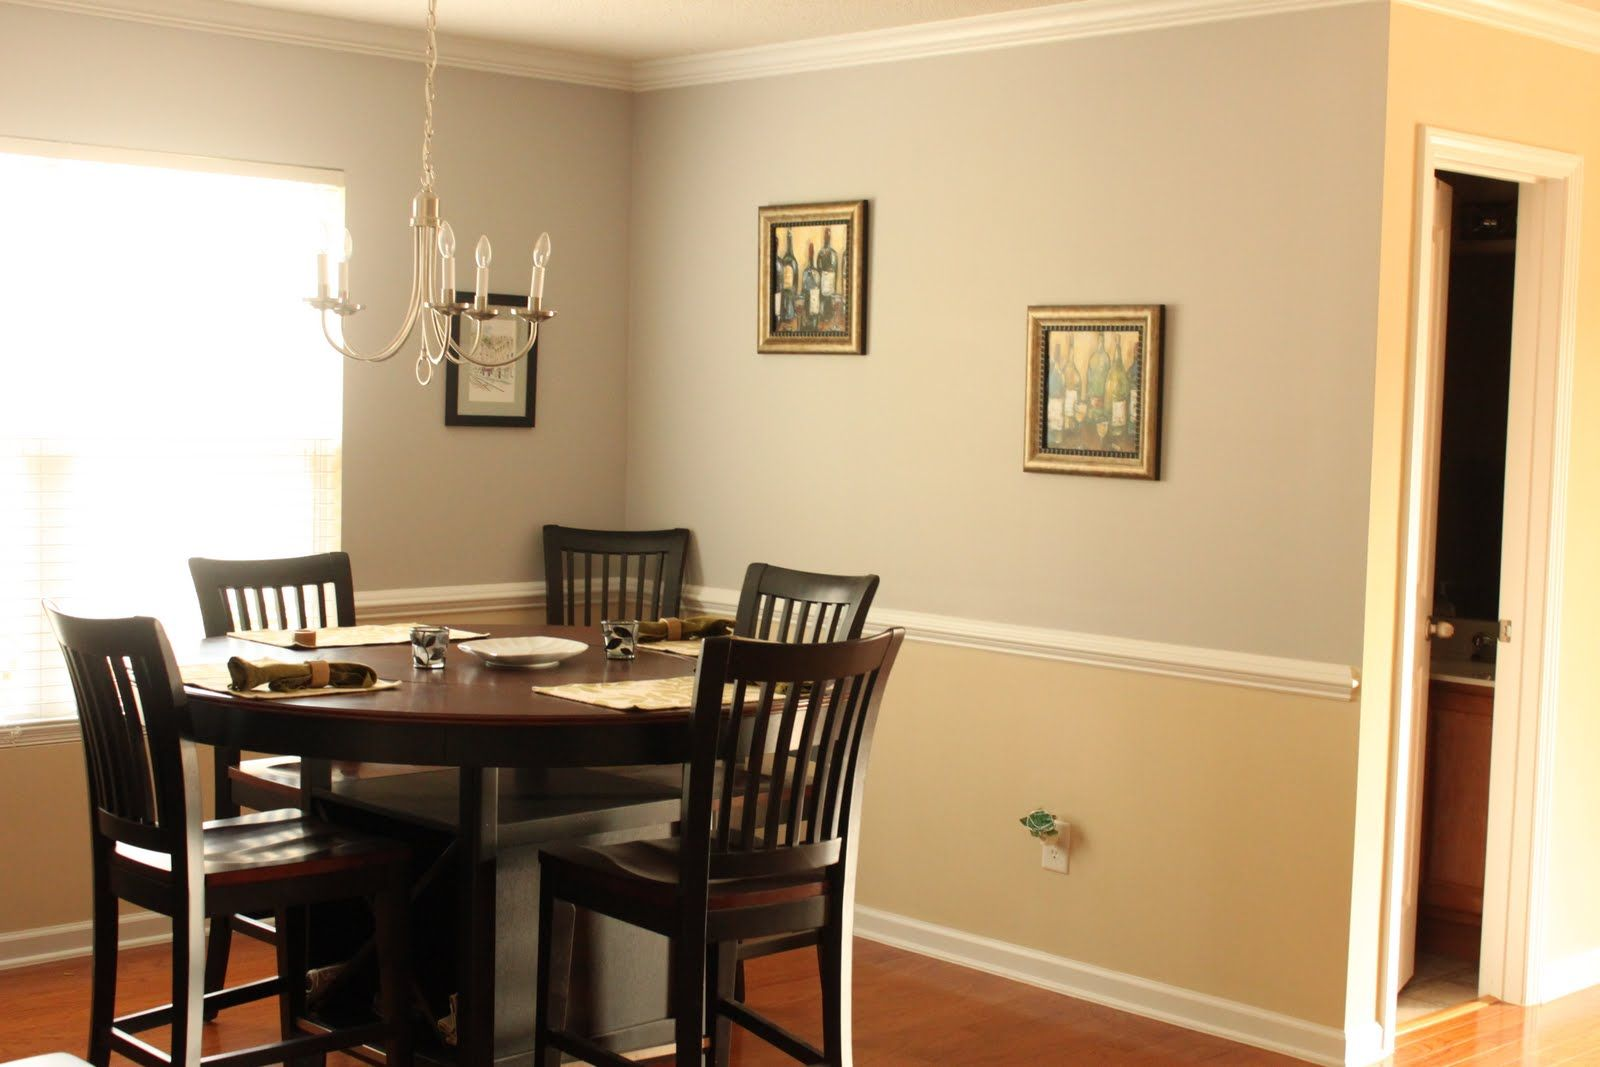 Kdrpc33 Kitchen Dining Room Paint Colors Today